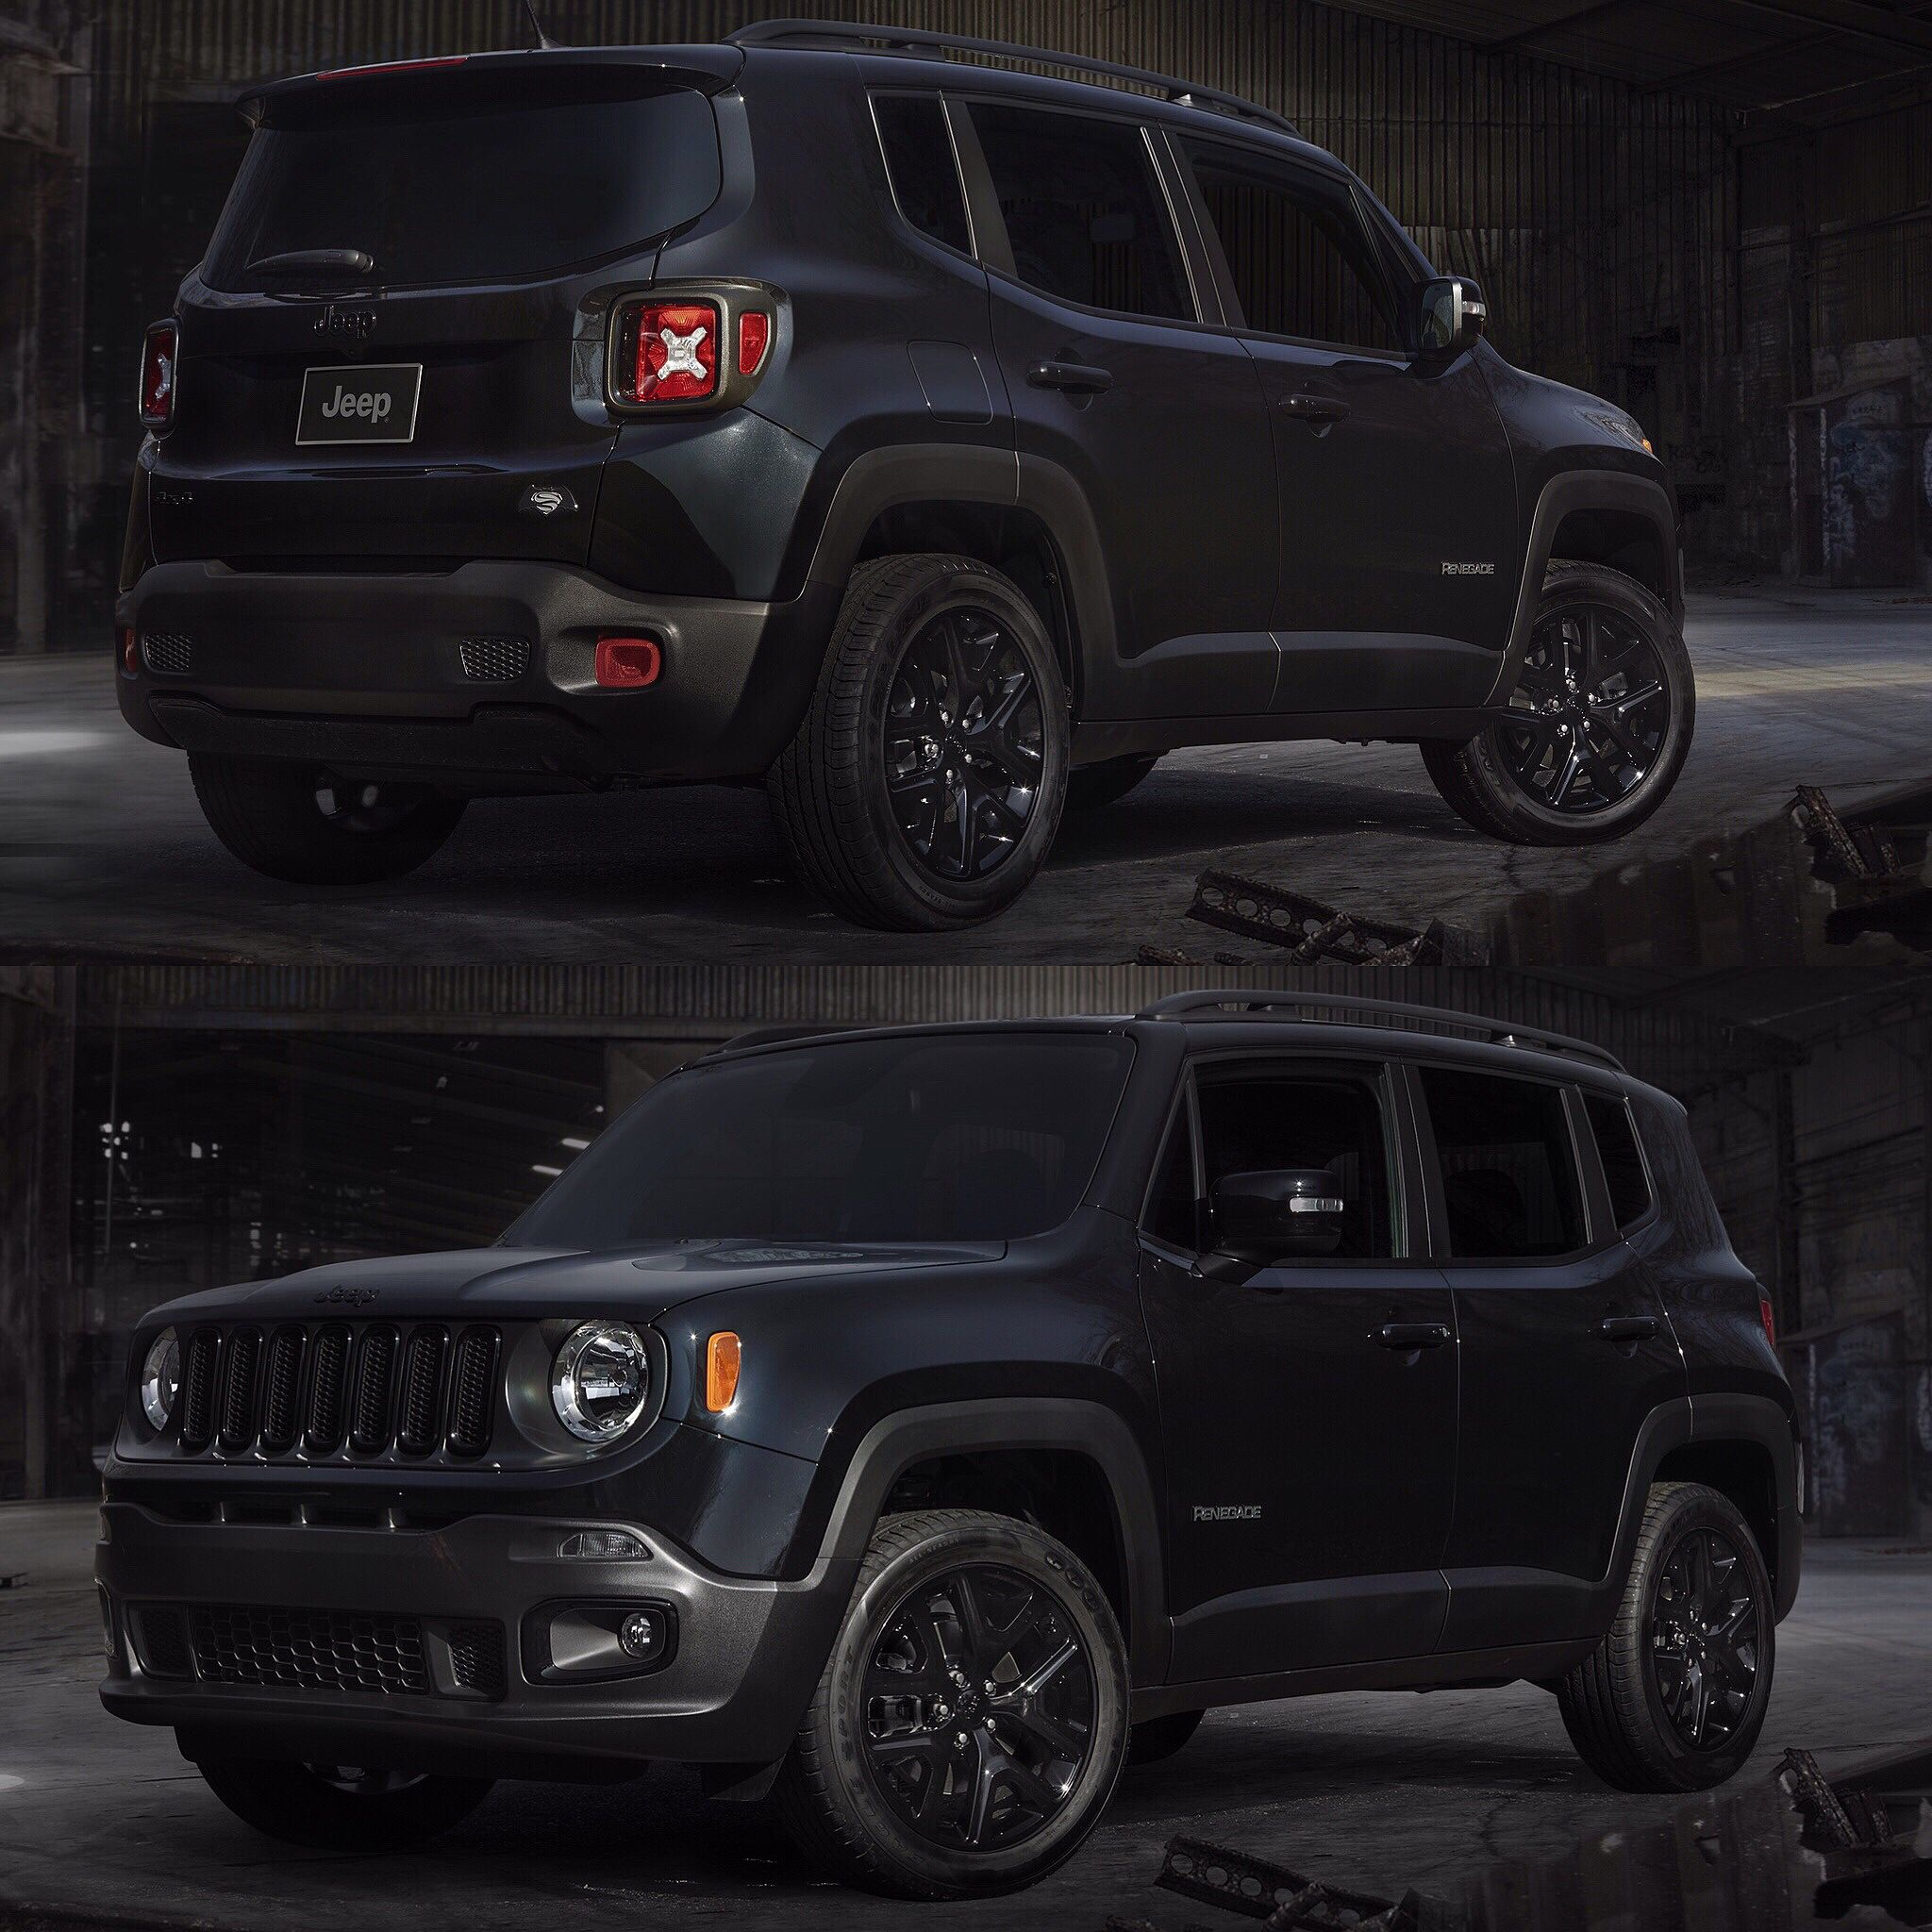 2016 Jeep Renegade Dawn Of Justice Special Edition Jeep Renegade Jeep Jeep Renegade Trailhawk